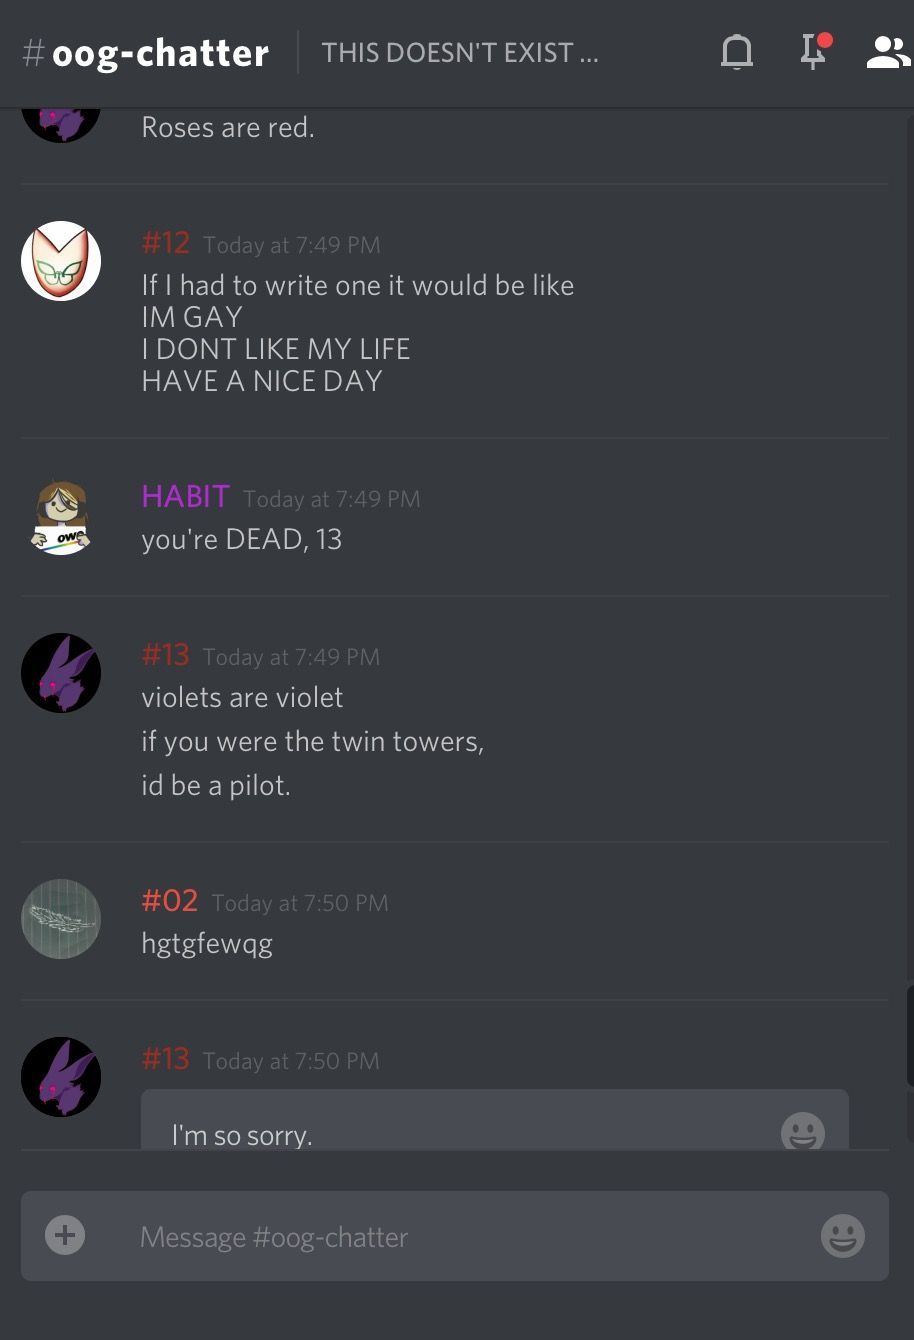 Pin By Marcelo De On Memes Discord Chat Funny Memes Creepypasta